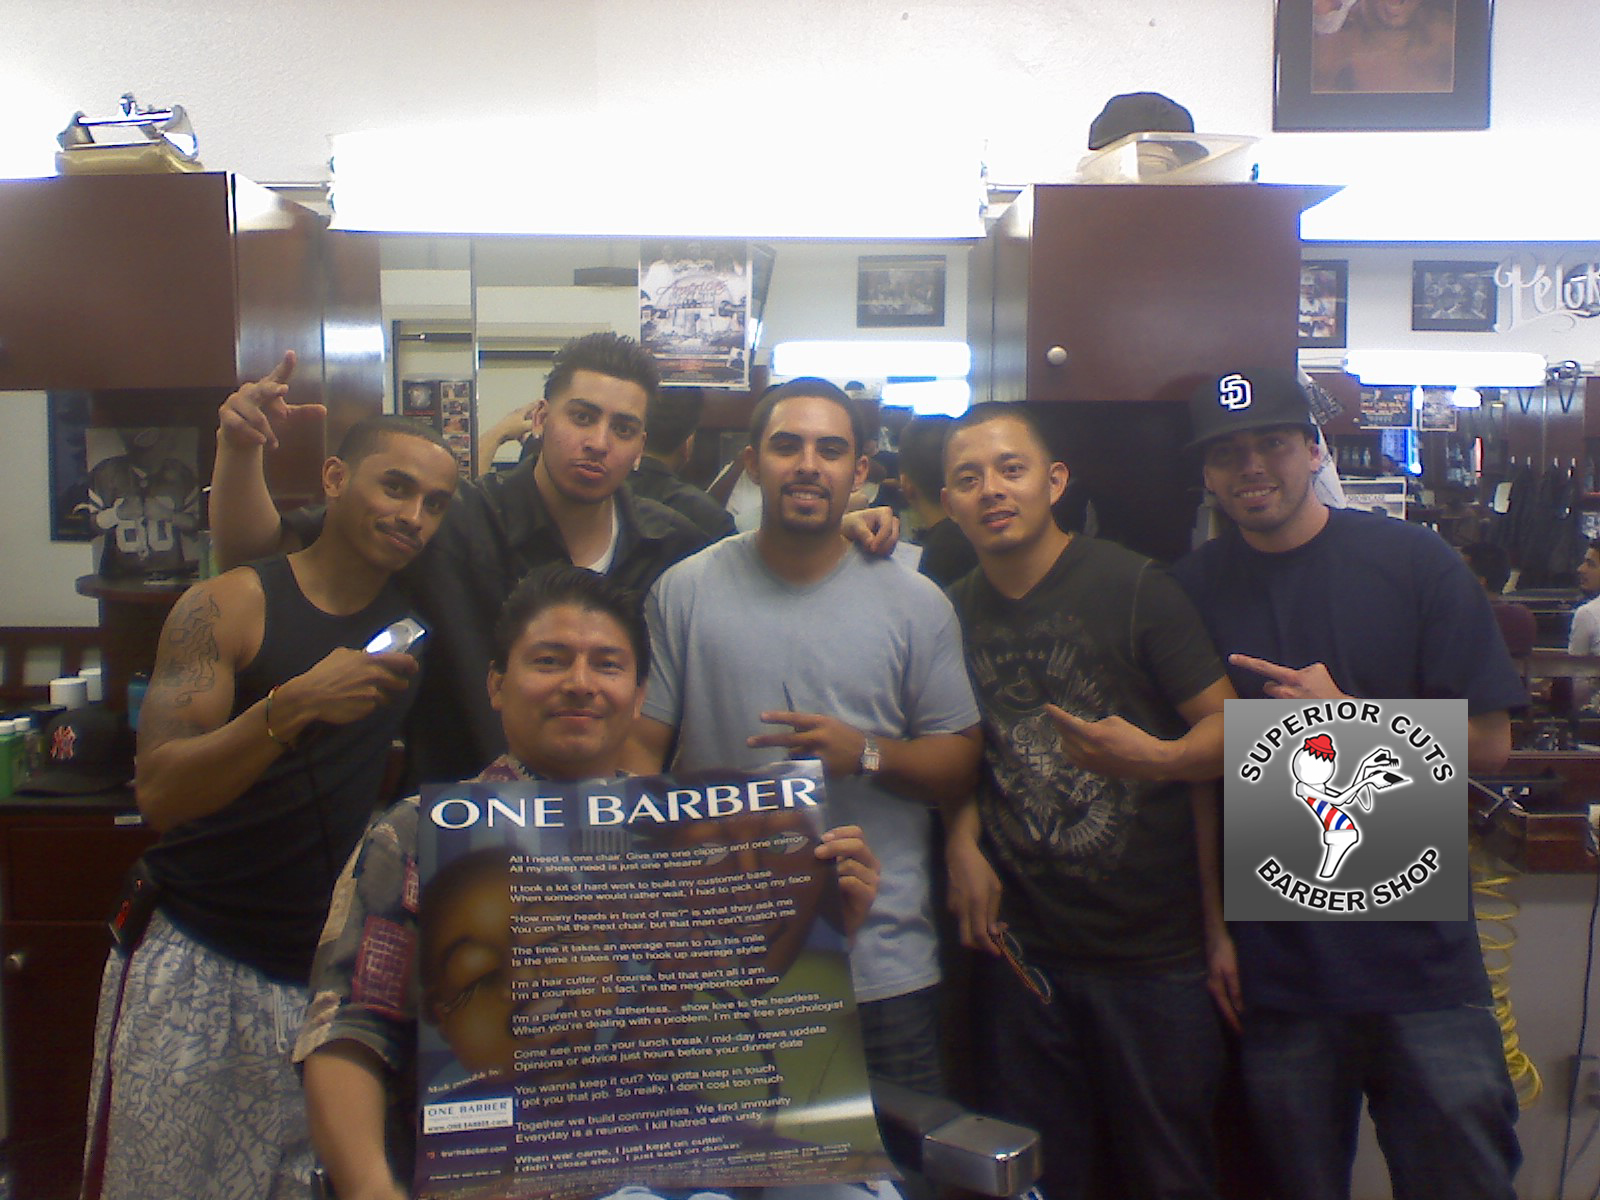 Barber Shop Chula Vista : picador blvd 690 3141 chula vista ca south bay barber shop chula vista ...